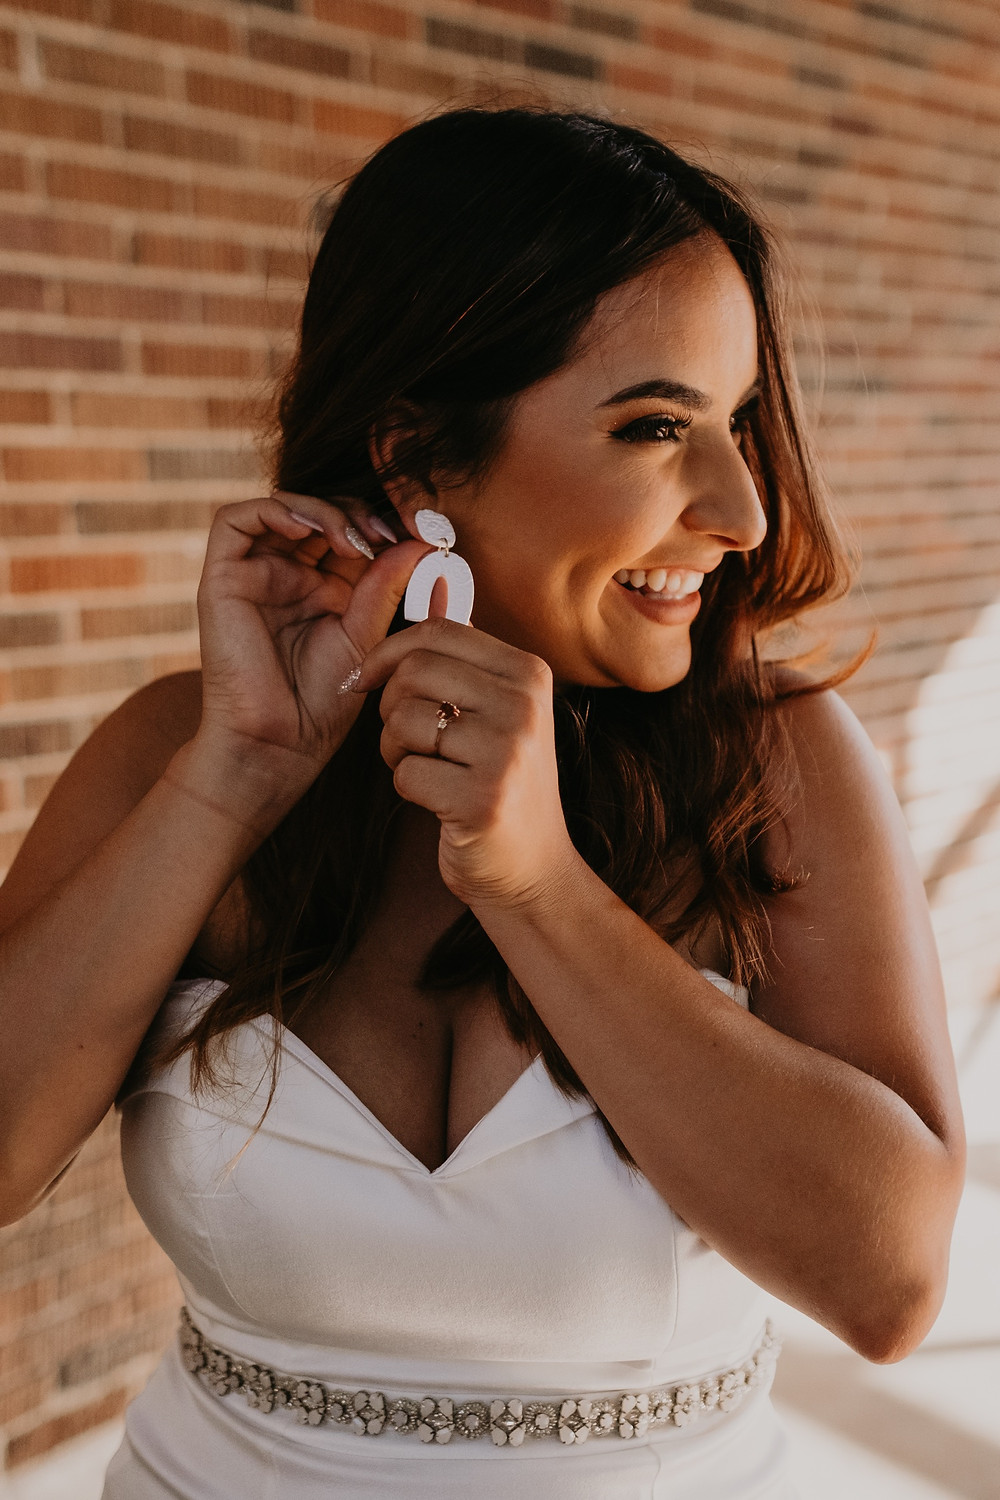 Bride with earrings ready for wedding. Photographed by Nicole Leanne Photography.